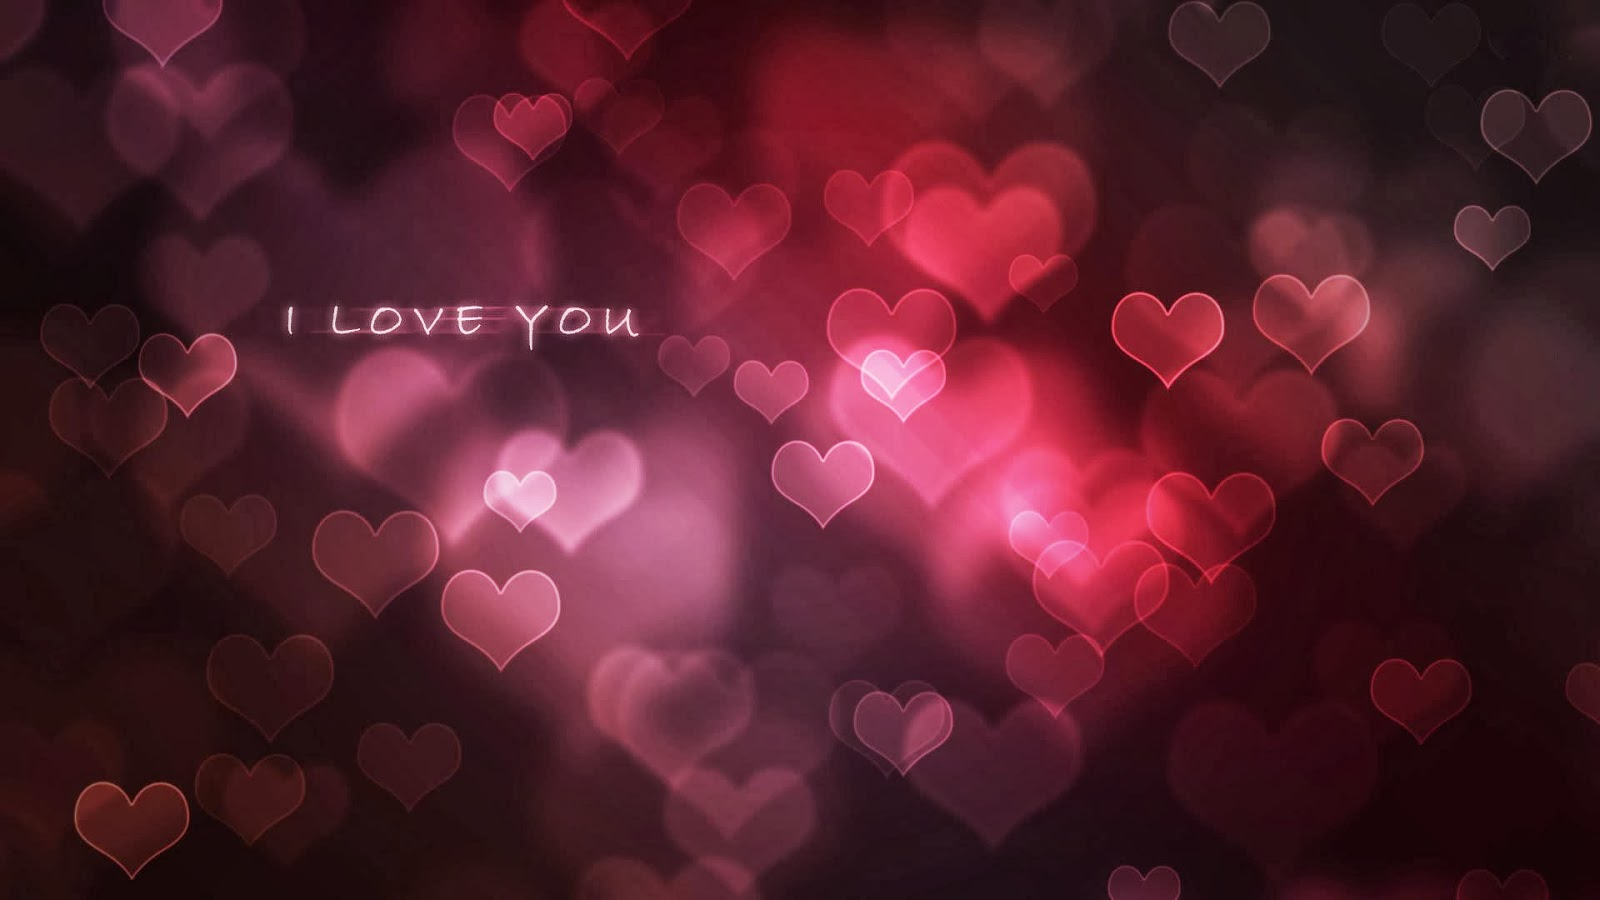 I-love-you-text-heart-background-pictures.jpg